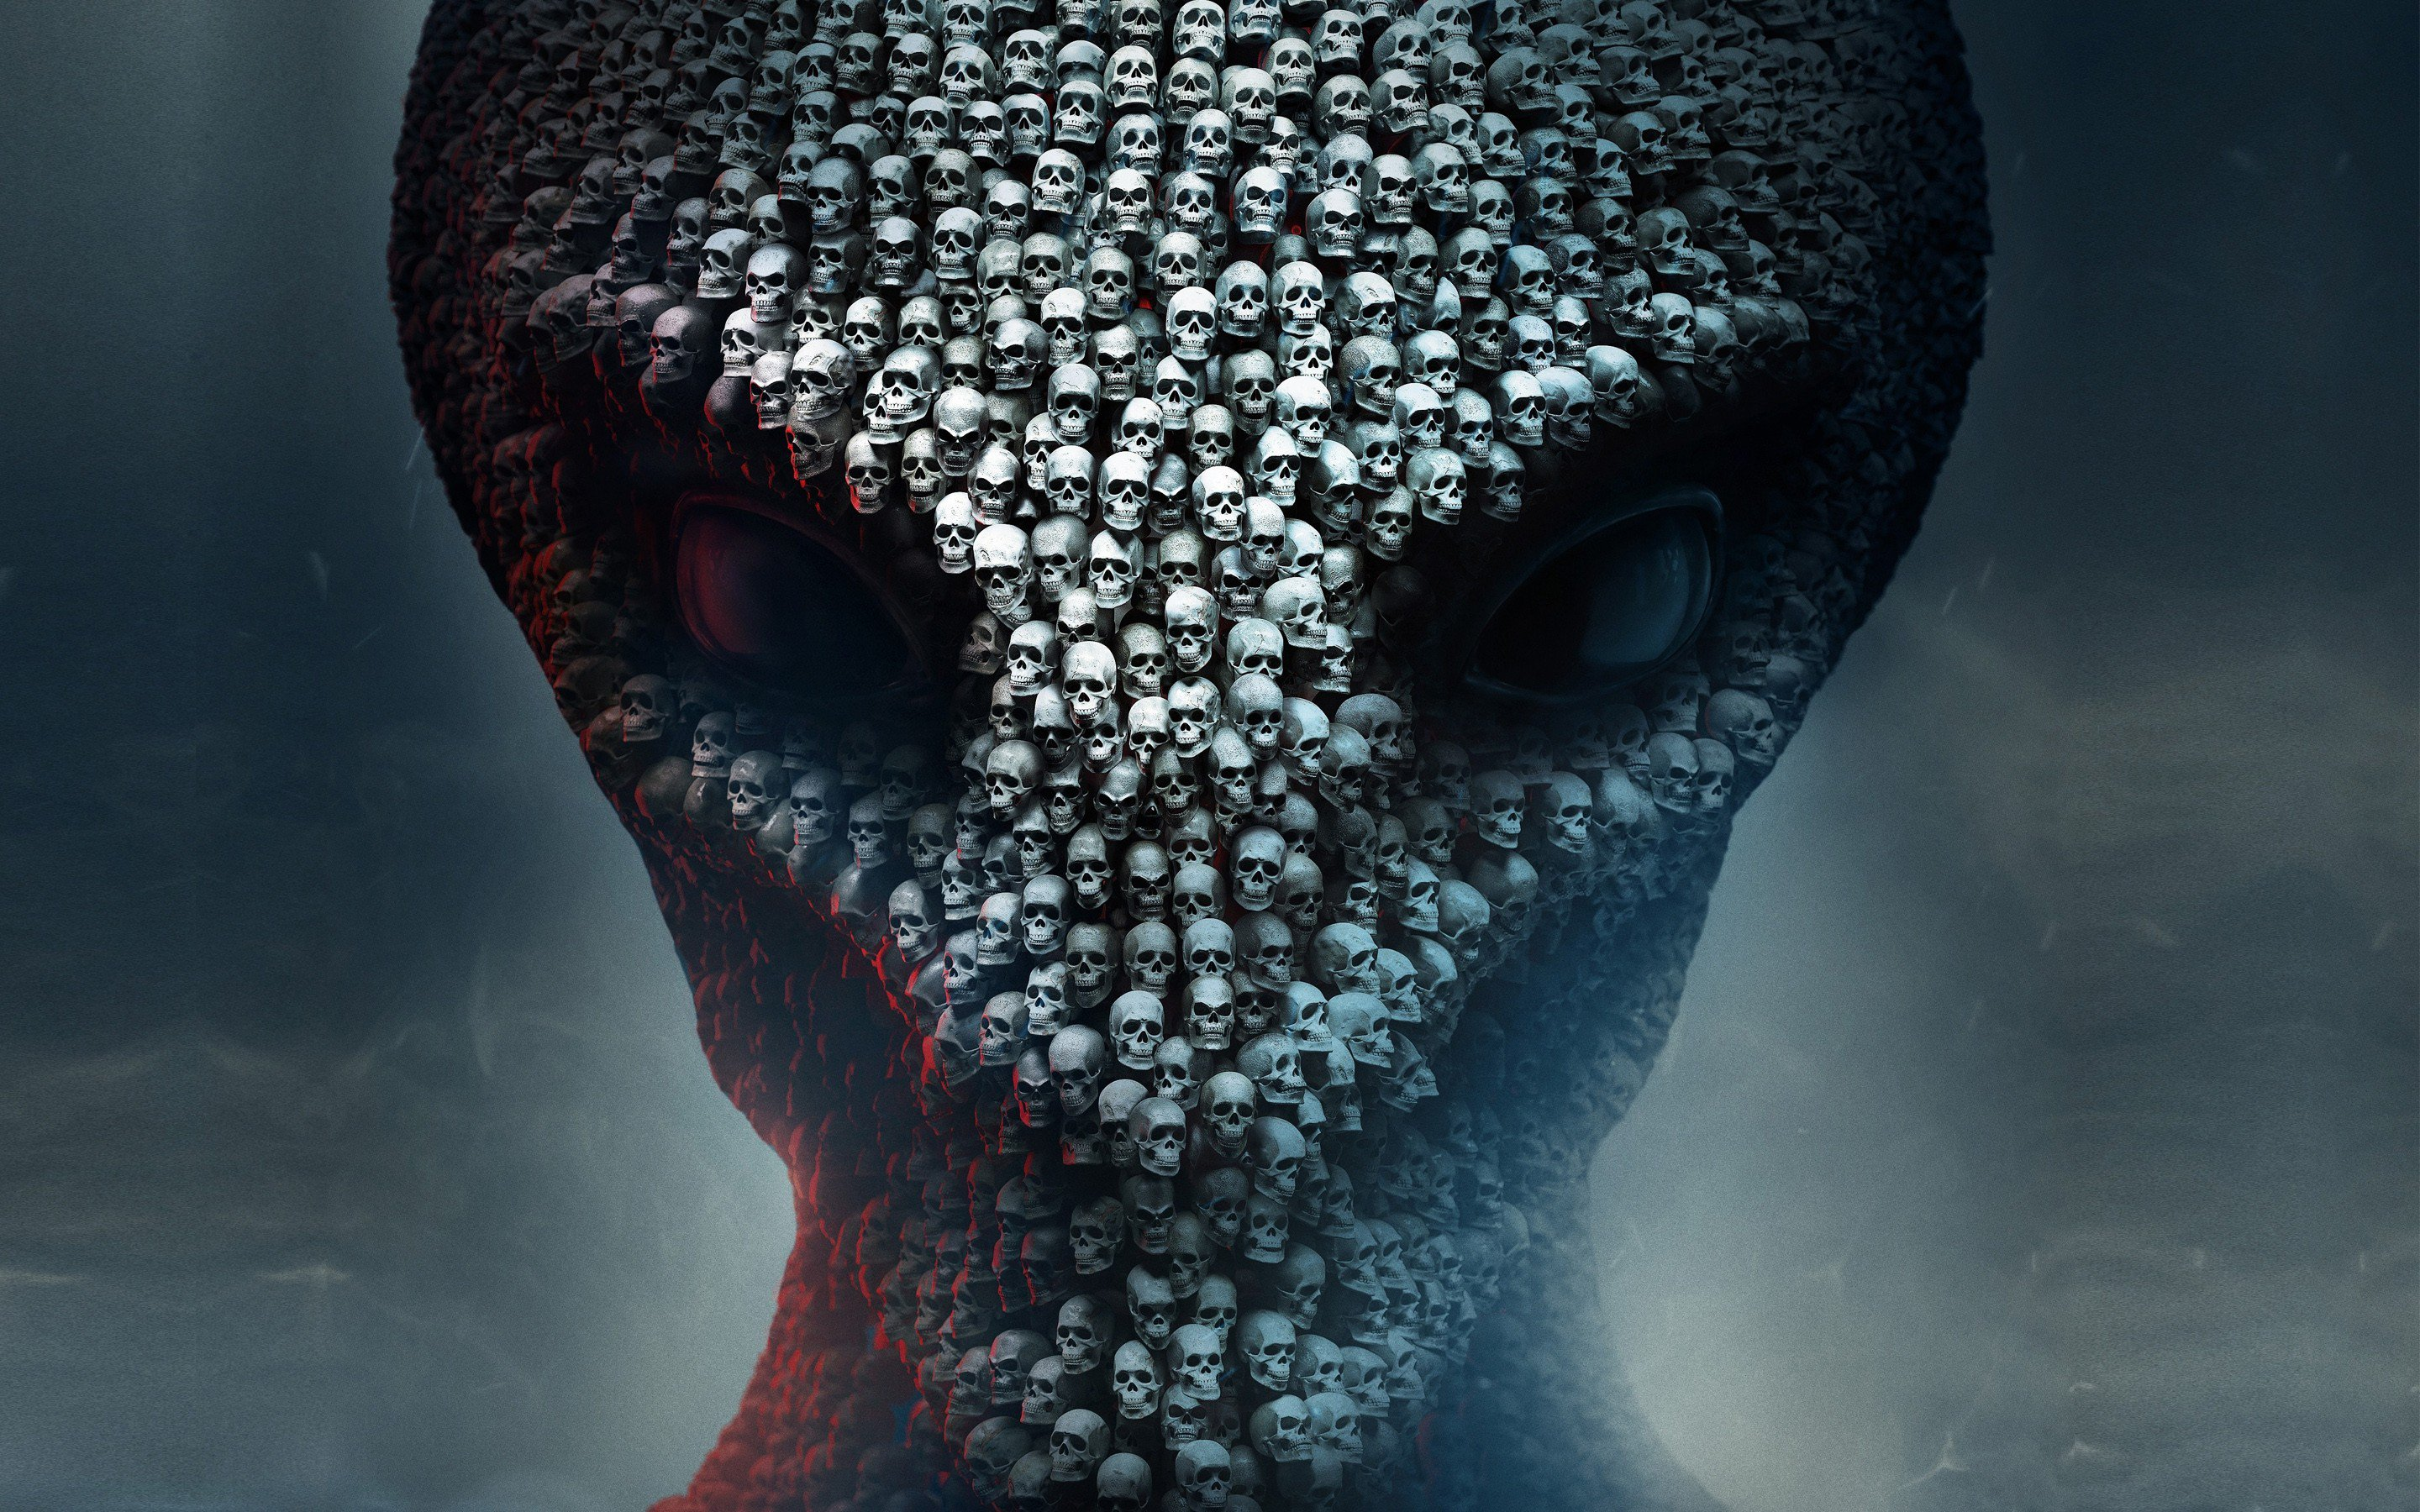 1280x2120 Xcom 2 Video Game Poster Iphone 6 Plus Wallpaper Hd Games 4k Wallpapers Images Photos And Background Wallpapers Den